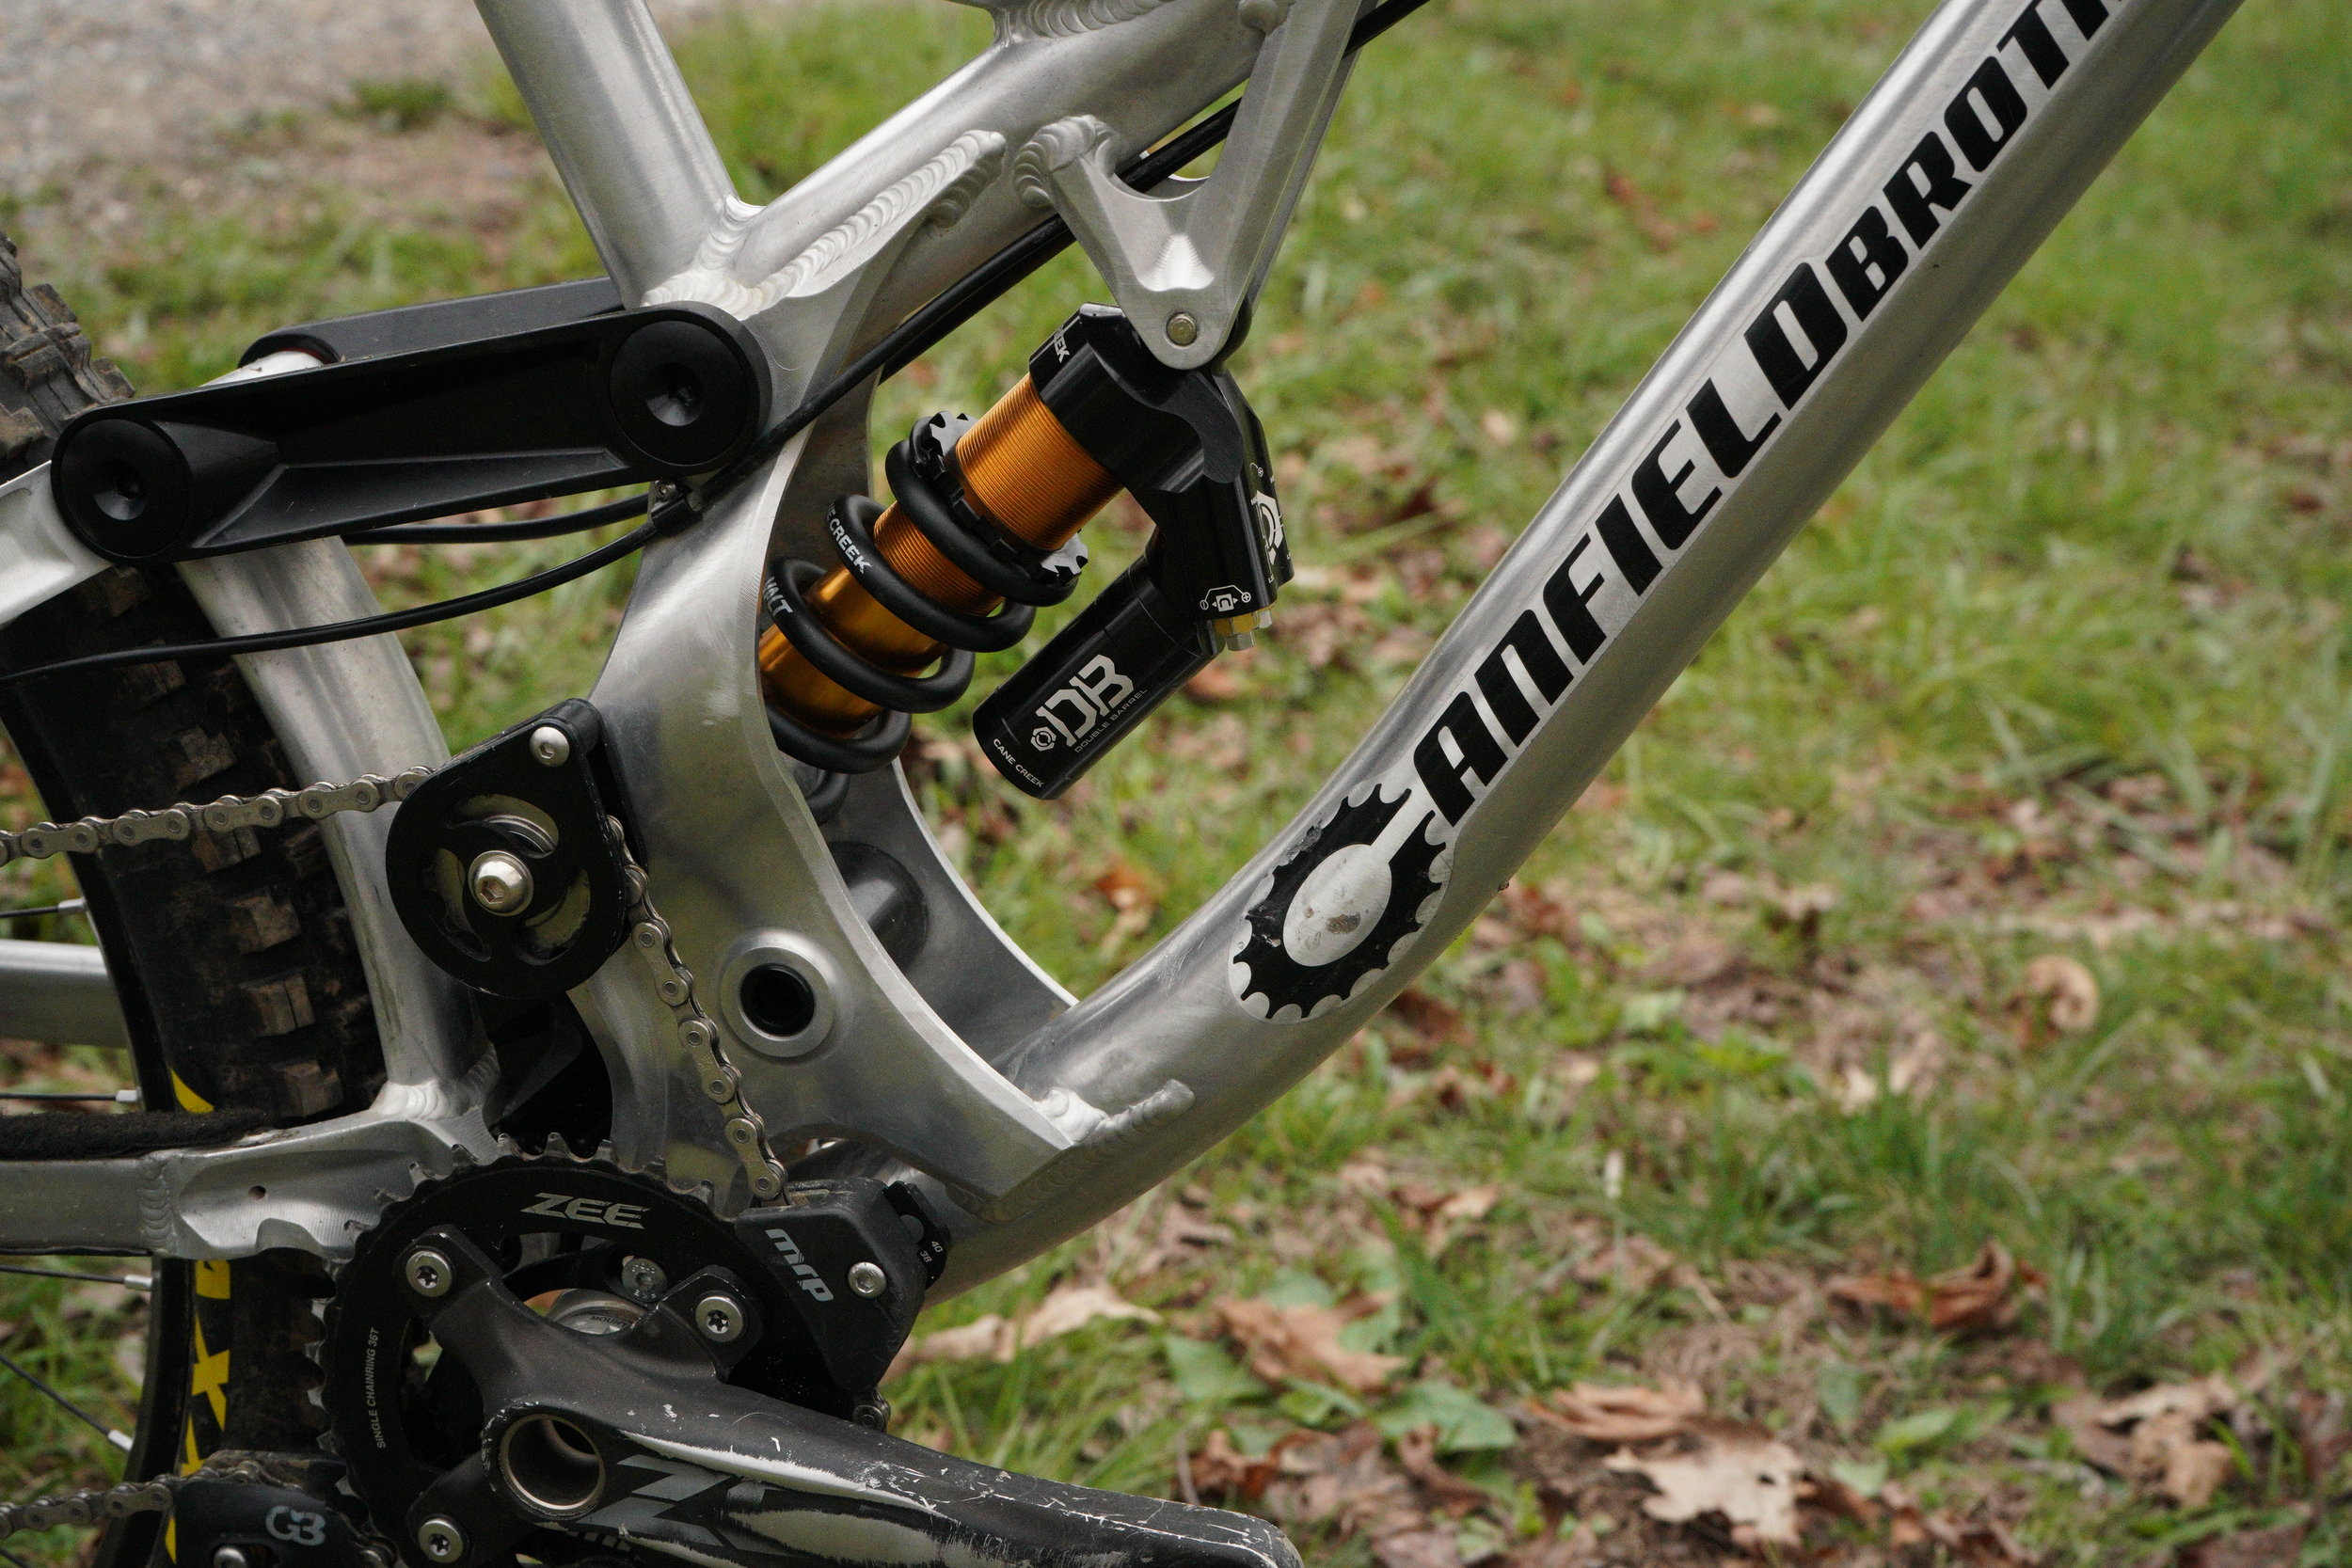 Ethan runs a Cane Creek DB Coil with a 400lb spring. While preferring the feel of a coil Ethan is also eager to try an air shock to compare the two back to back. For cranks Ethan runs Shimano Zee cranks paired up with a MRP G3 chain guide.